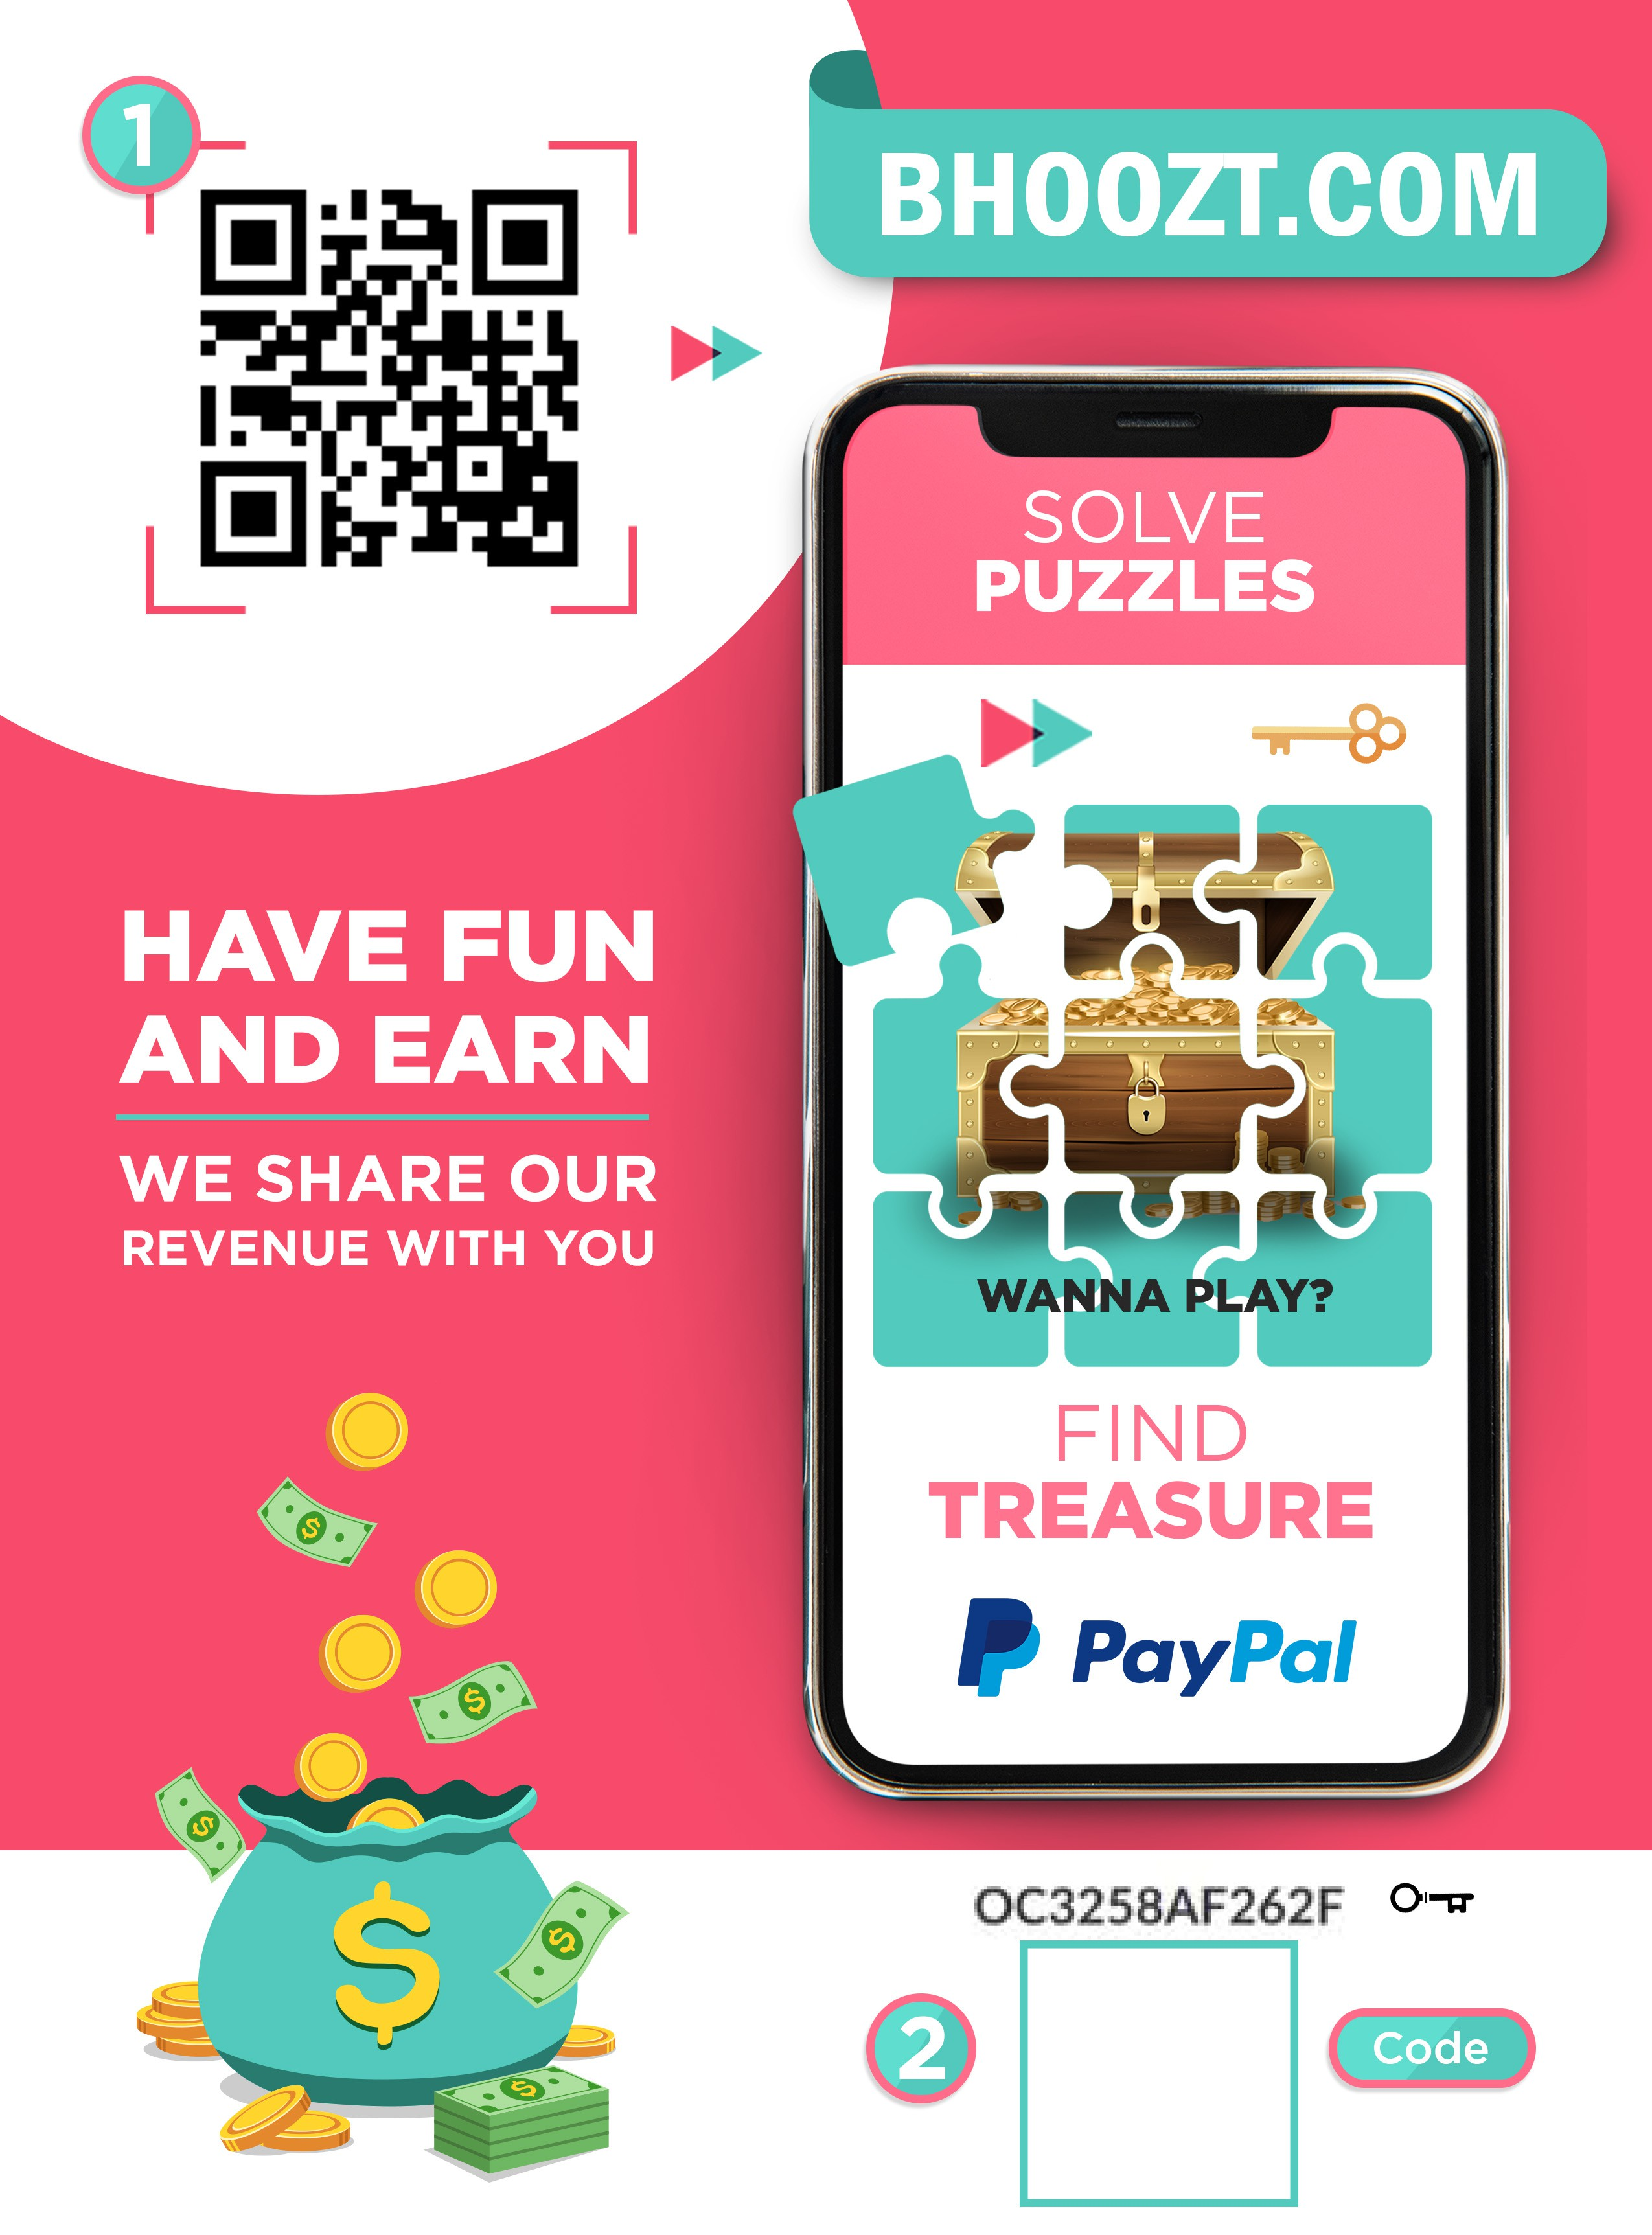 Fun retail point of sale to get shoppers playing puzzles